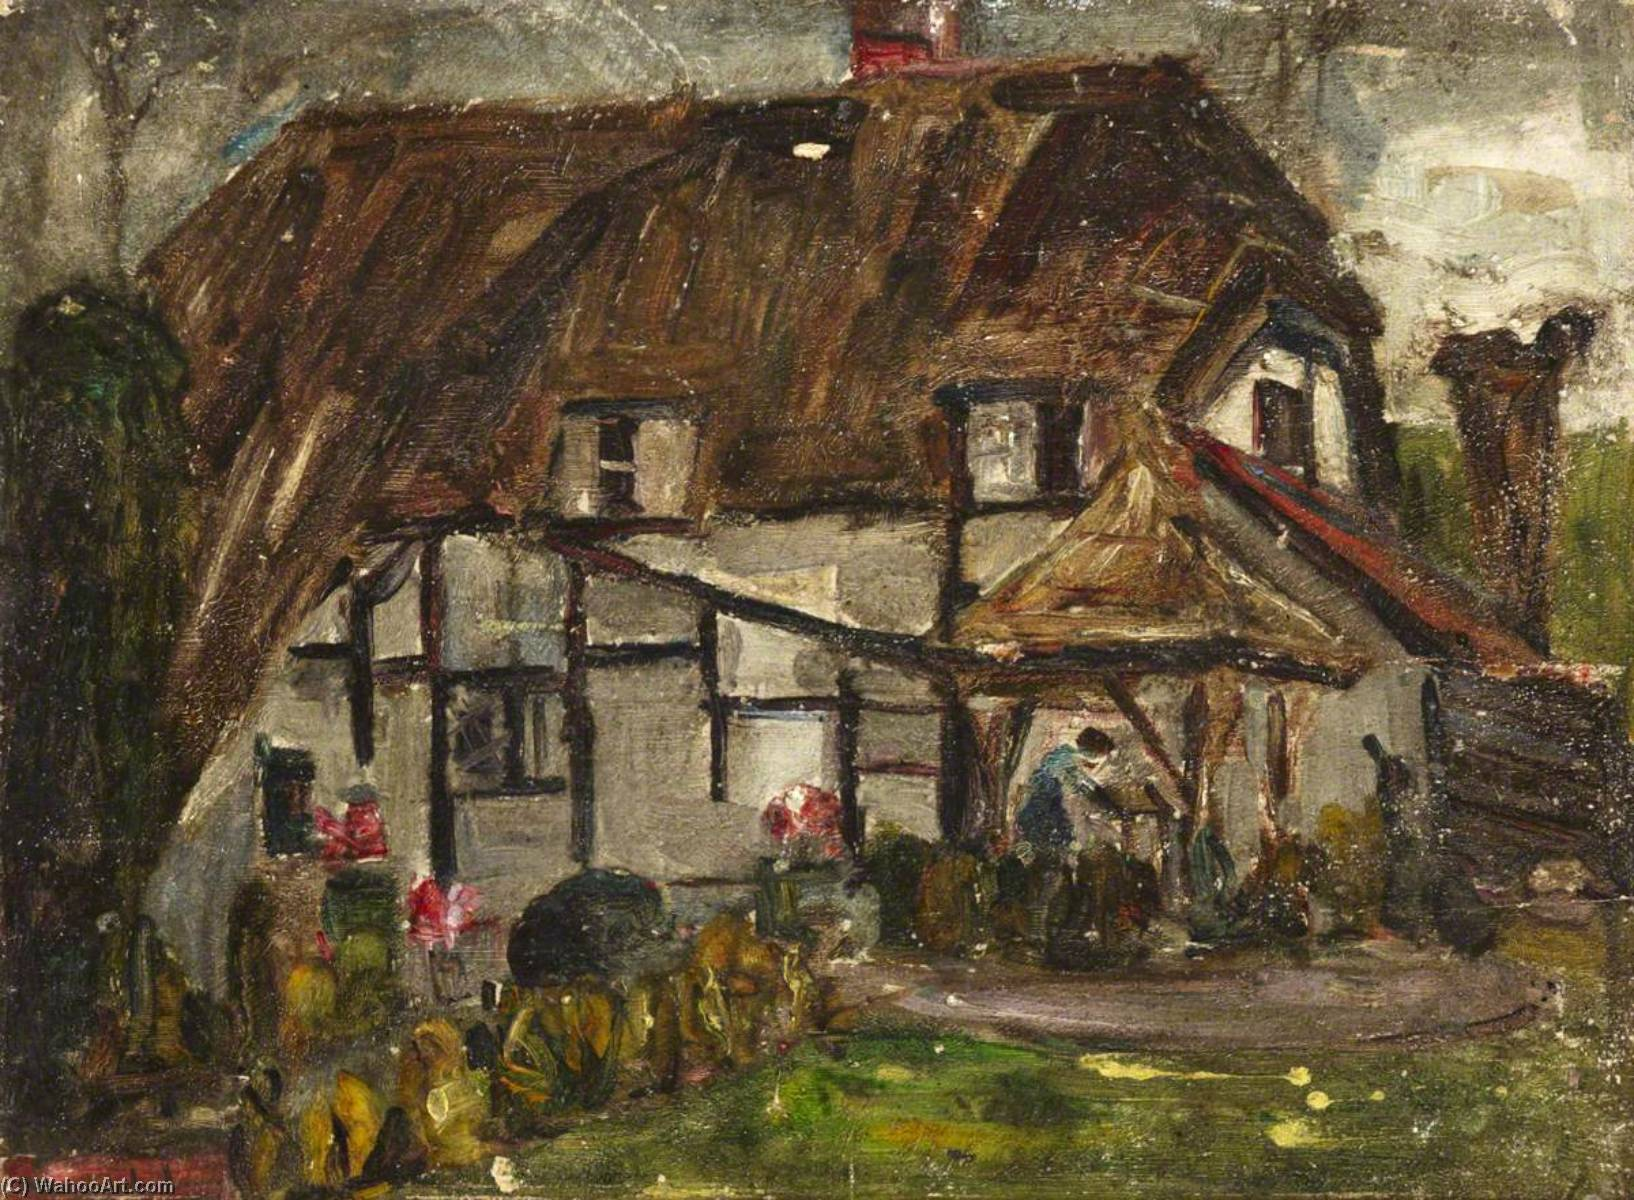 Rustic Country Home, Oil by Maud Ireland Button